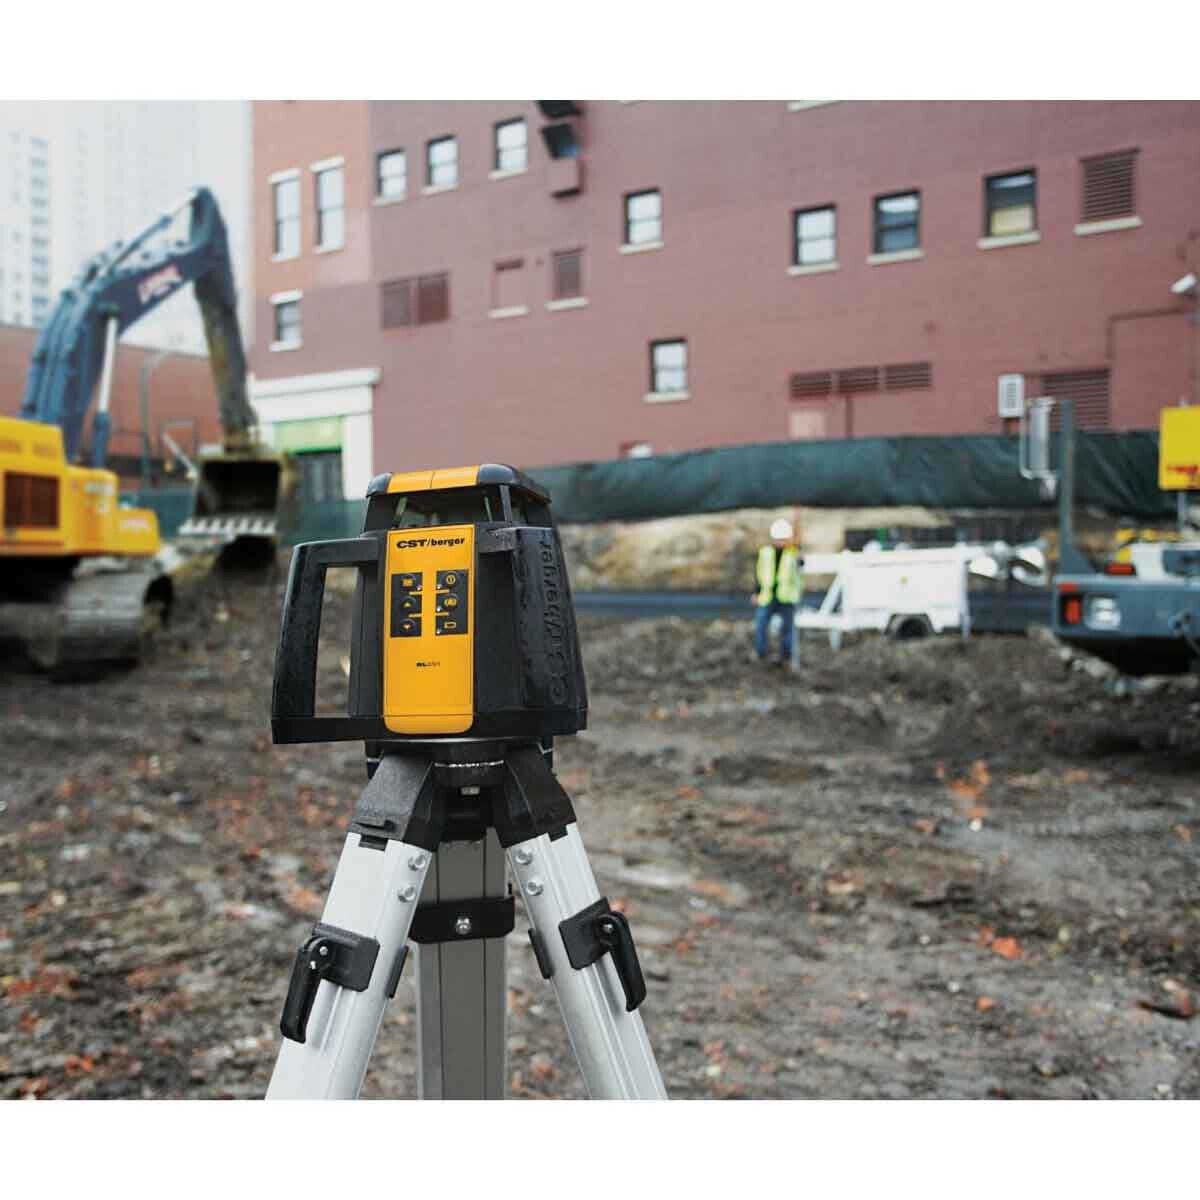 CST Berger RL25H Construction Site Laser